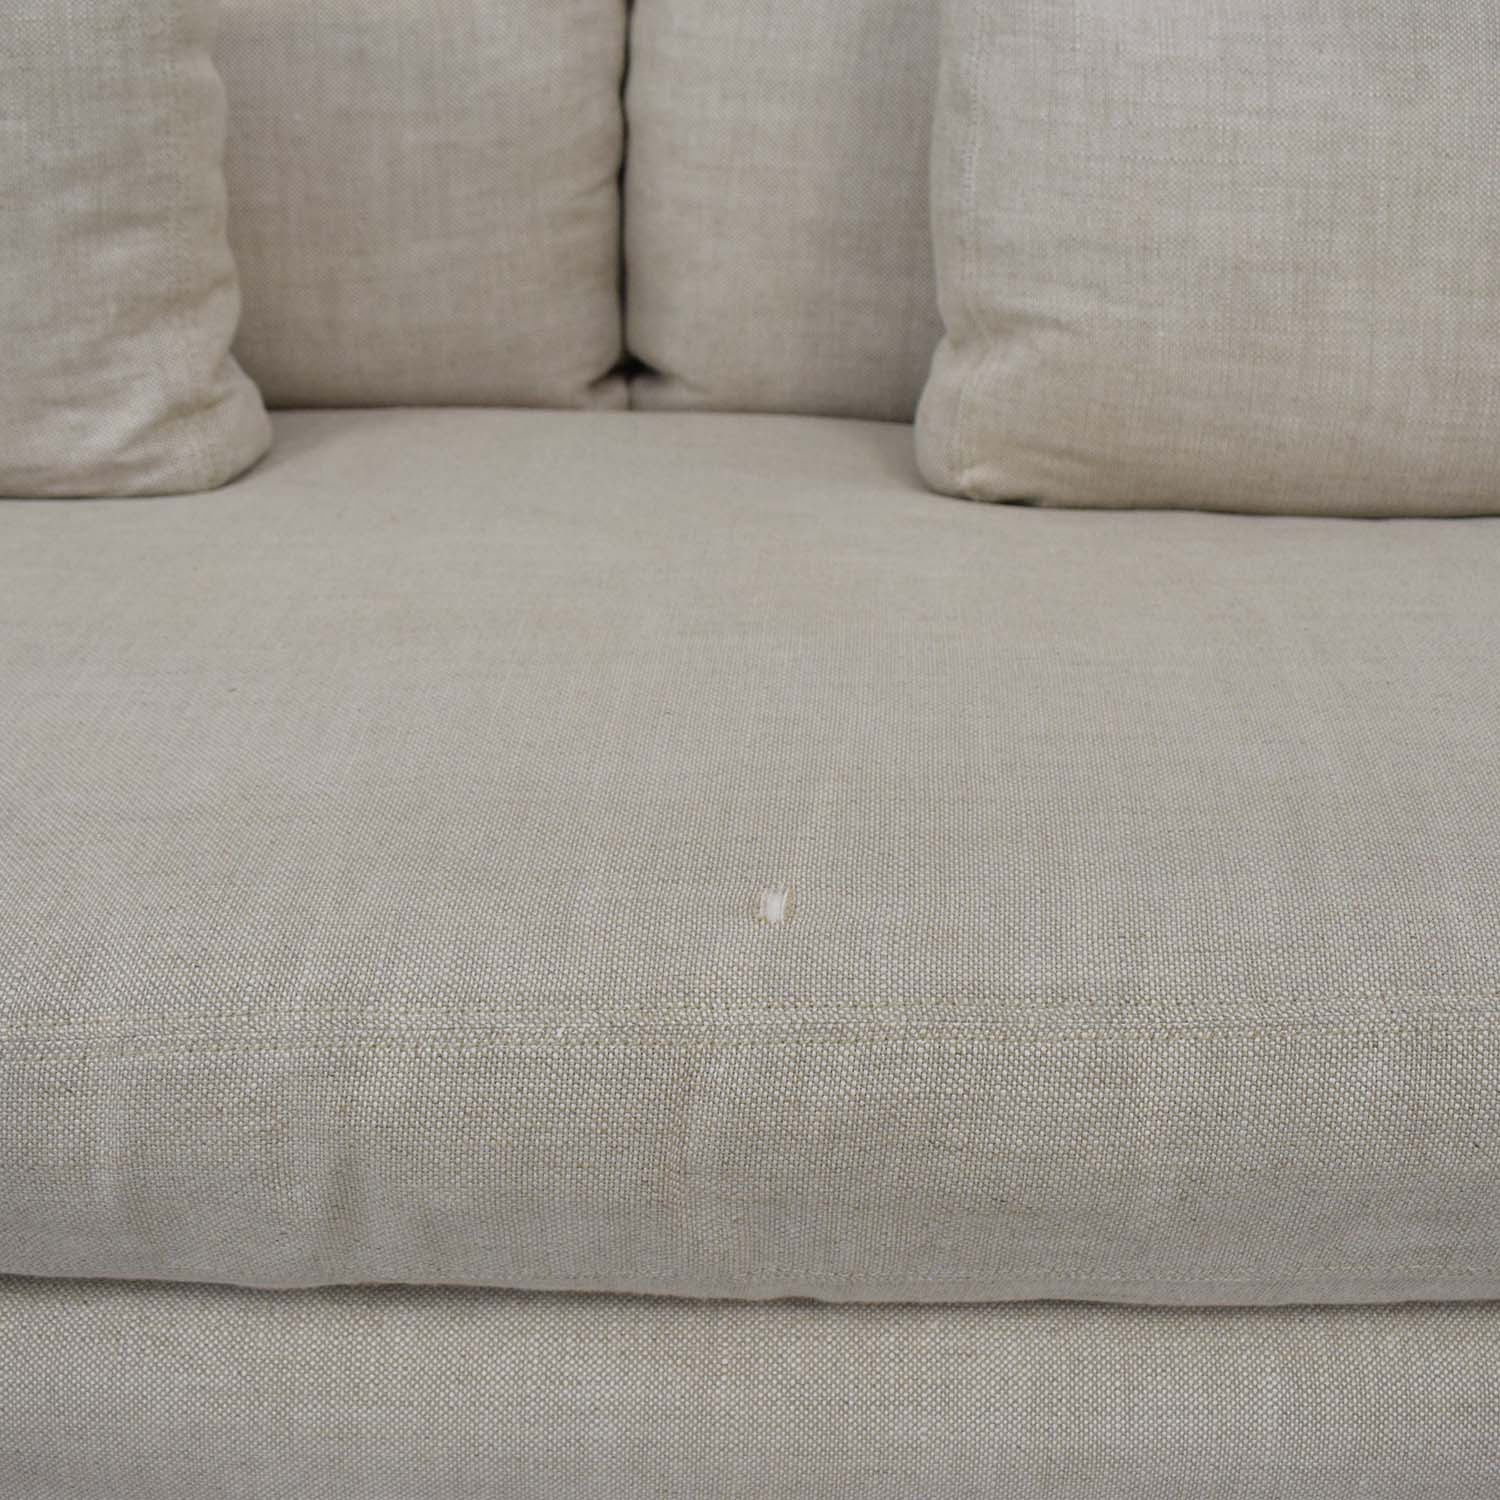 Restoration Hardware Restoration Hardware Belgian Track Arm Slipcovered Two-Seat Cushion Sofa price